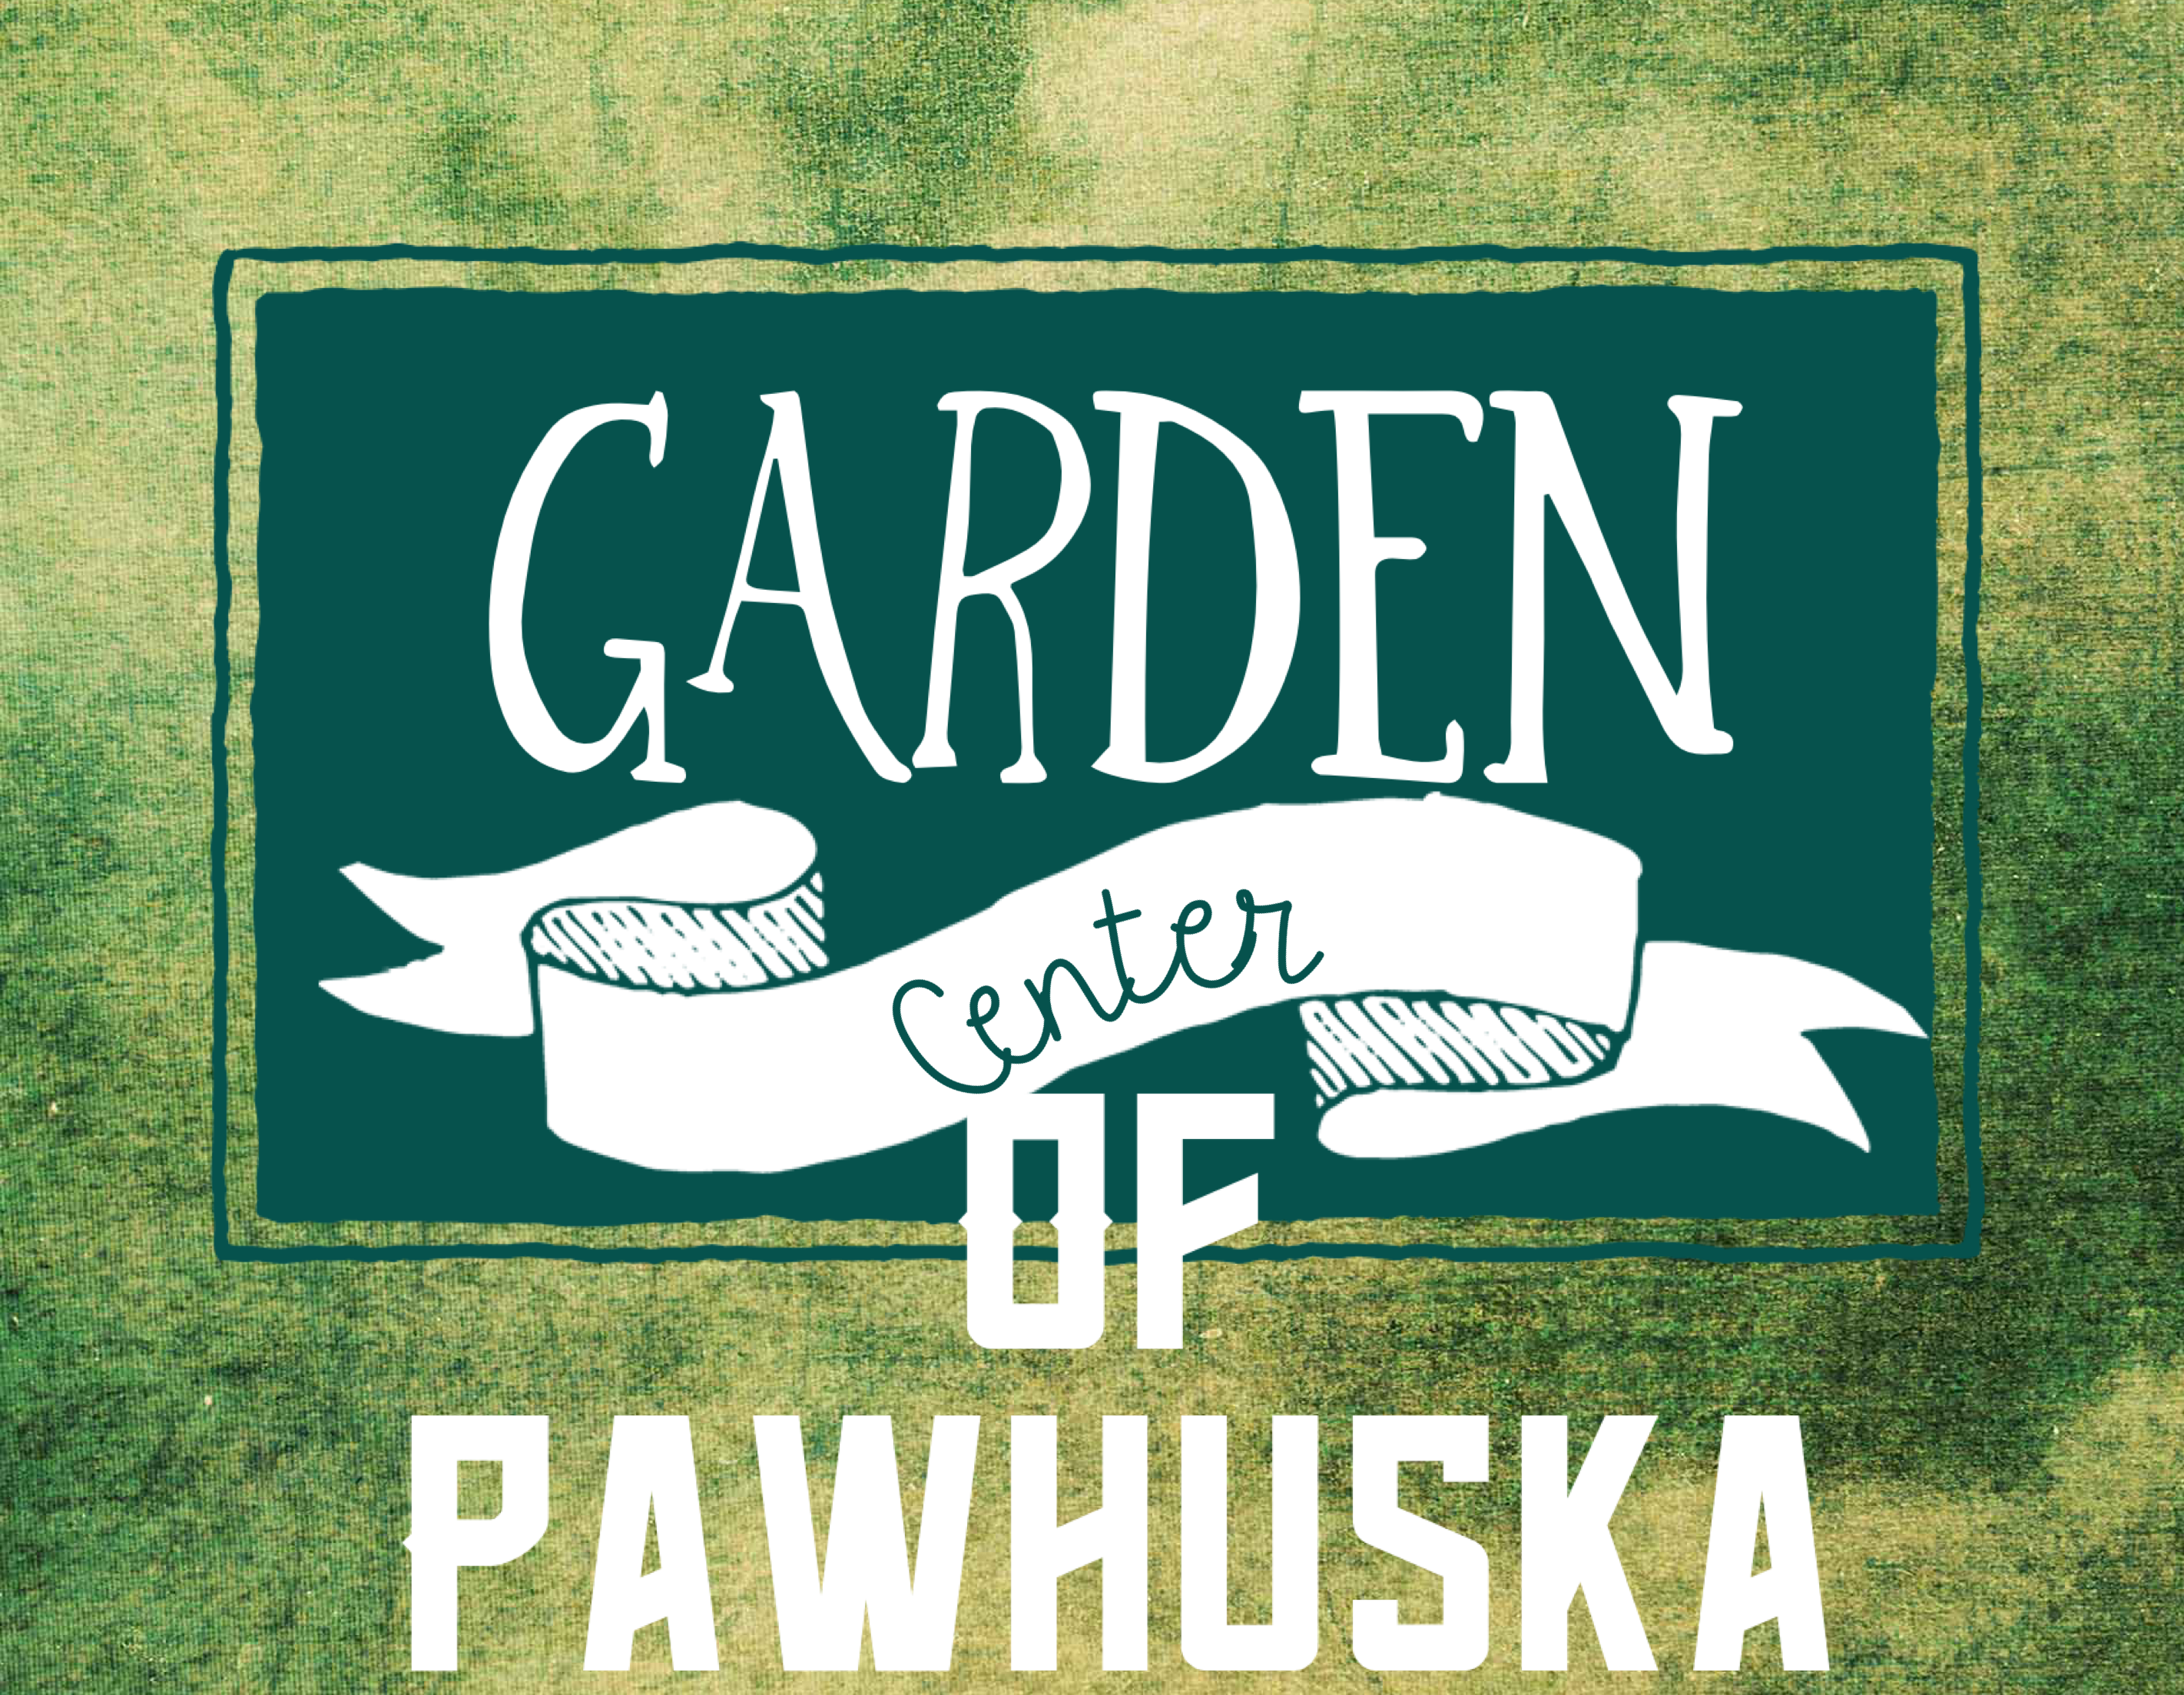 Garden Center of Pawhuska logo